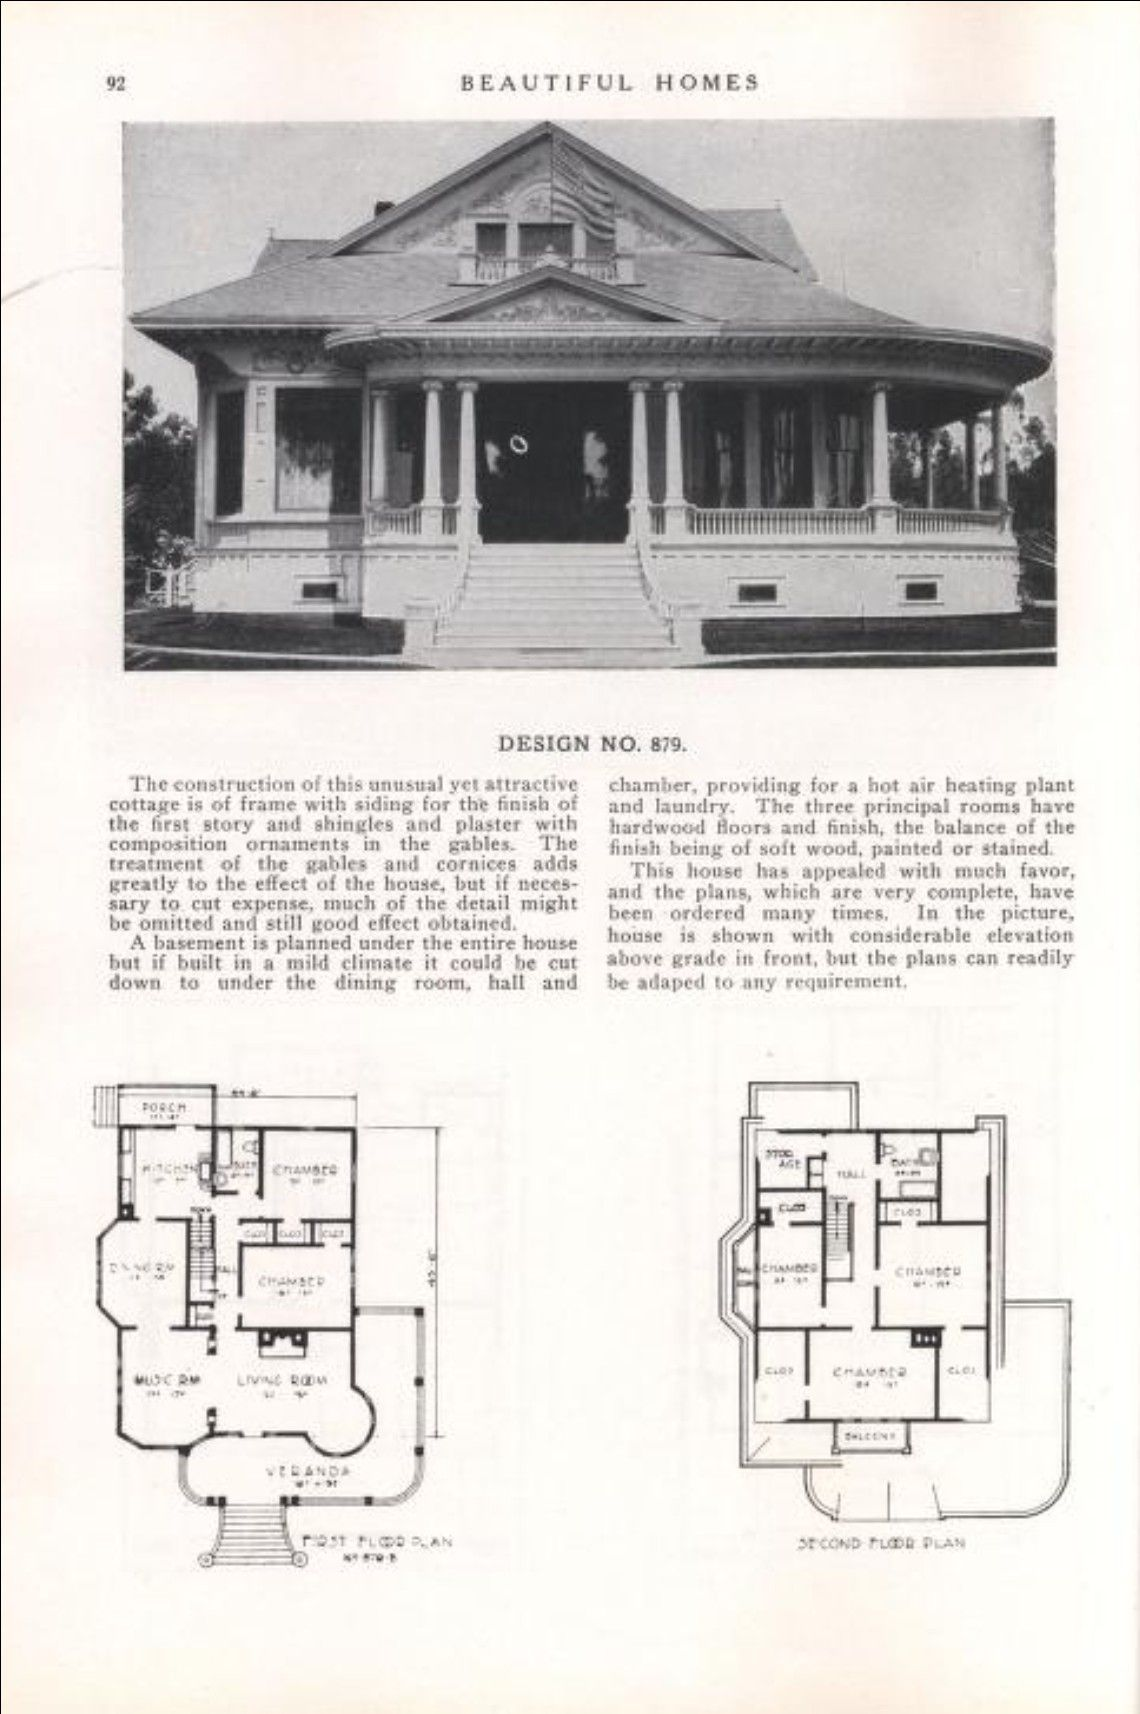 Pin By Stephen Richards On House Mid Century Plans In 2021 House Plans Beautiful Home Designs Vintage House Plans